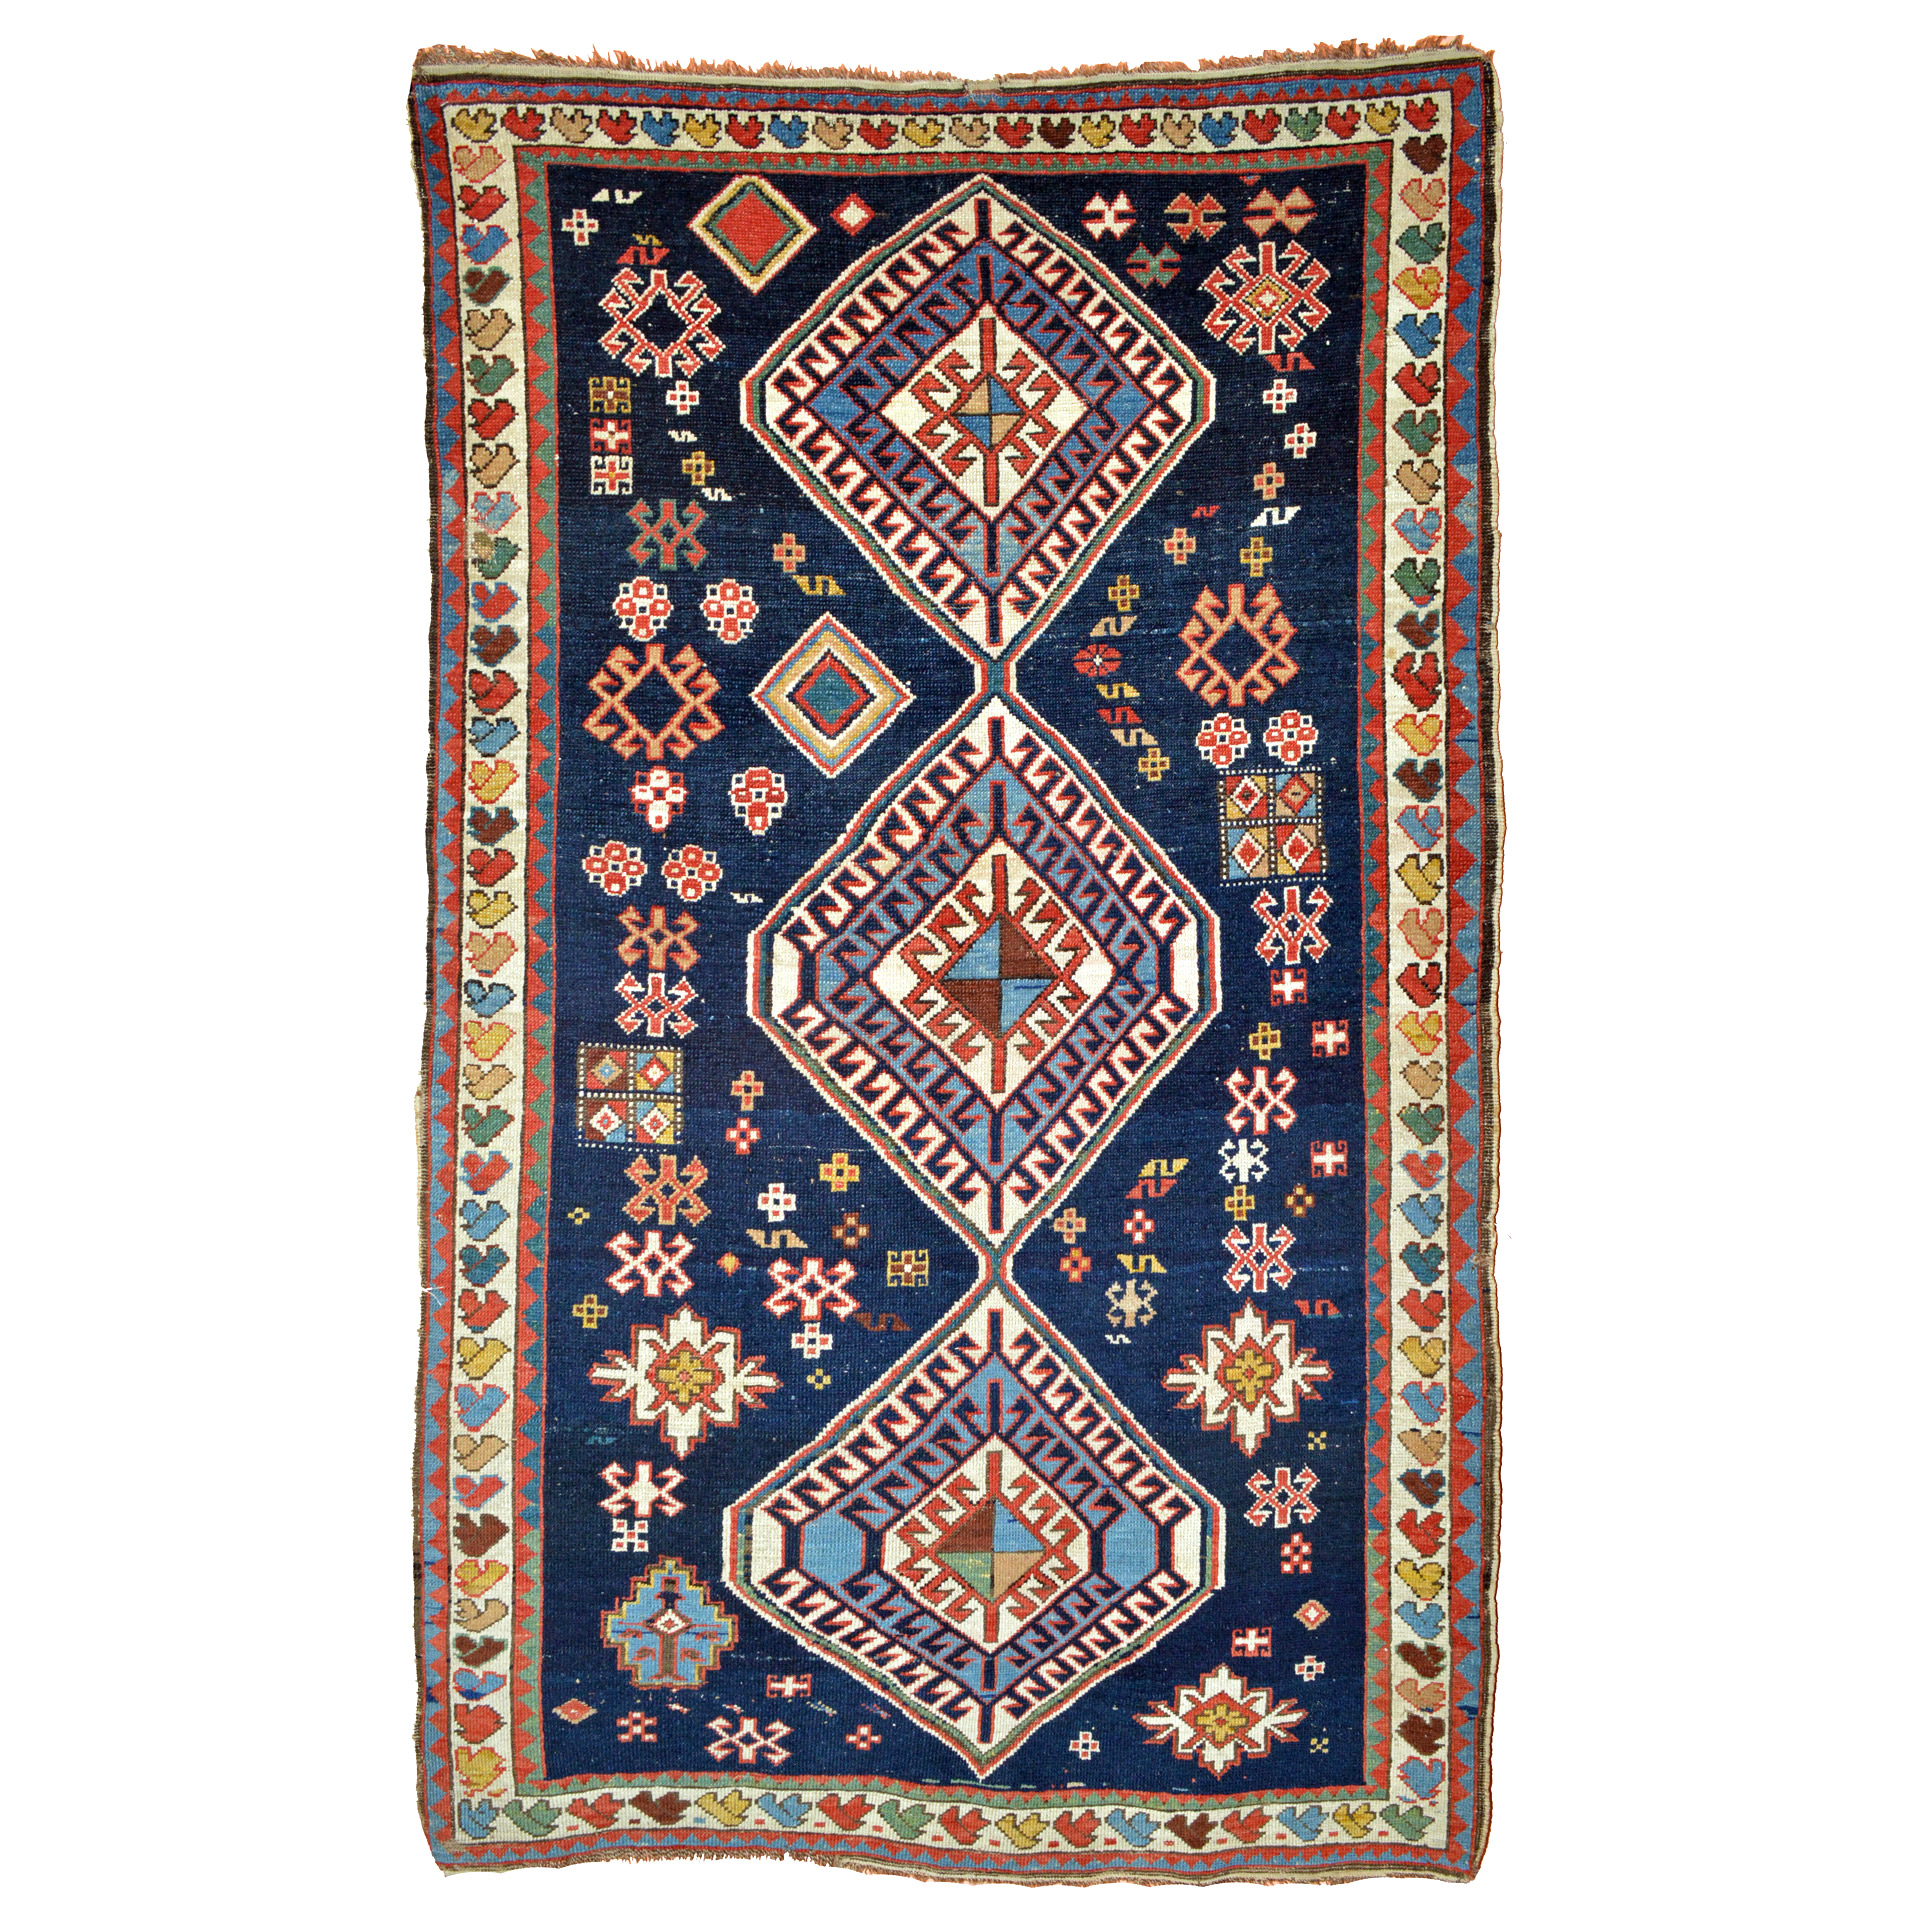 Antique Caucasian Shirvan rug with three medallions and ancillary geometric motifs on a navy blue field- Douglas Stock Gallery, antique Oriental rugs Boston, MA area New England